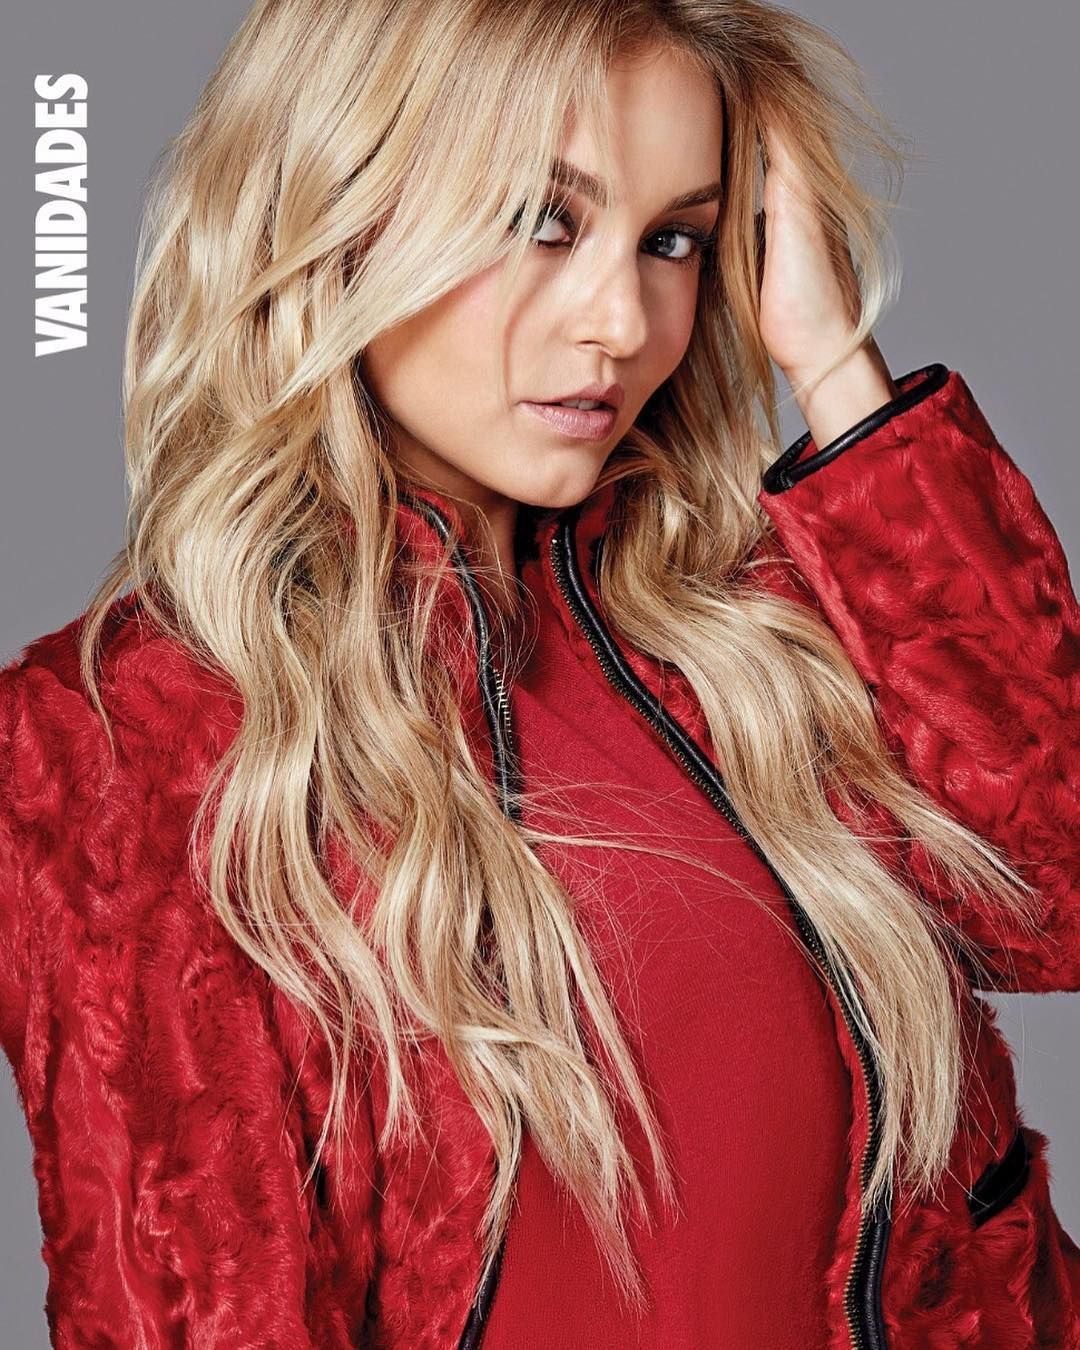 vanidadesmx ❤️❤️❤️ | angelique boyer in 2019 | mexican